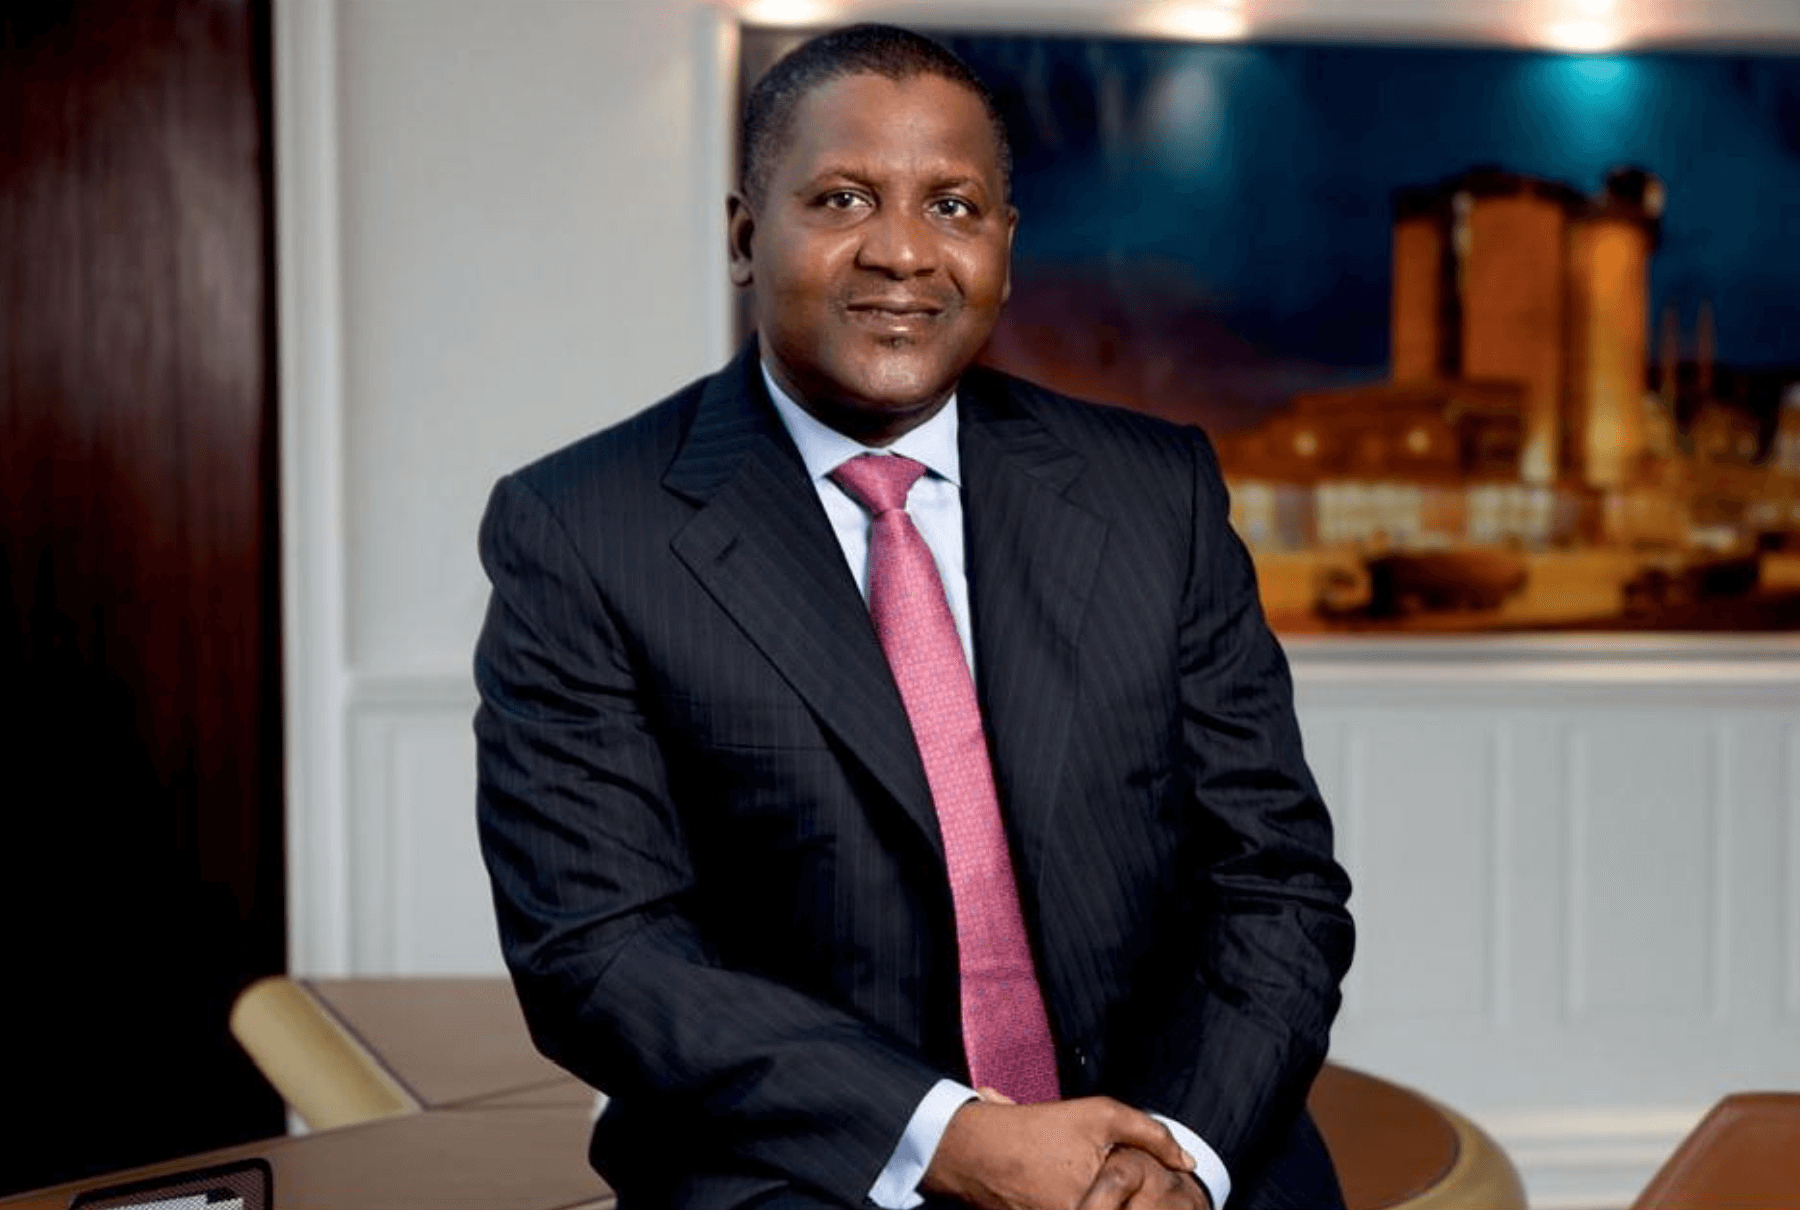 Billionaire Aliko Dangote is the world's richest black person—here's how he made his wealth